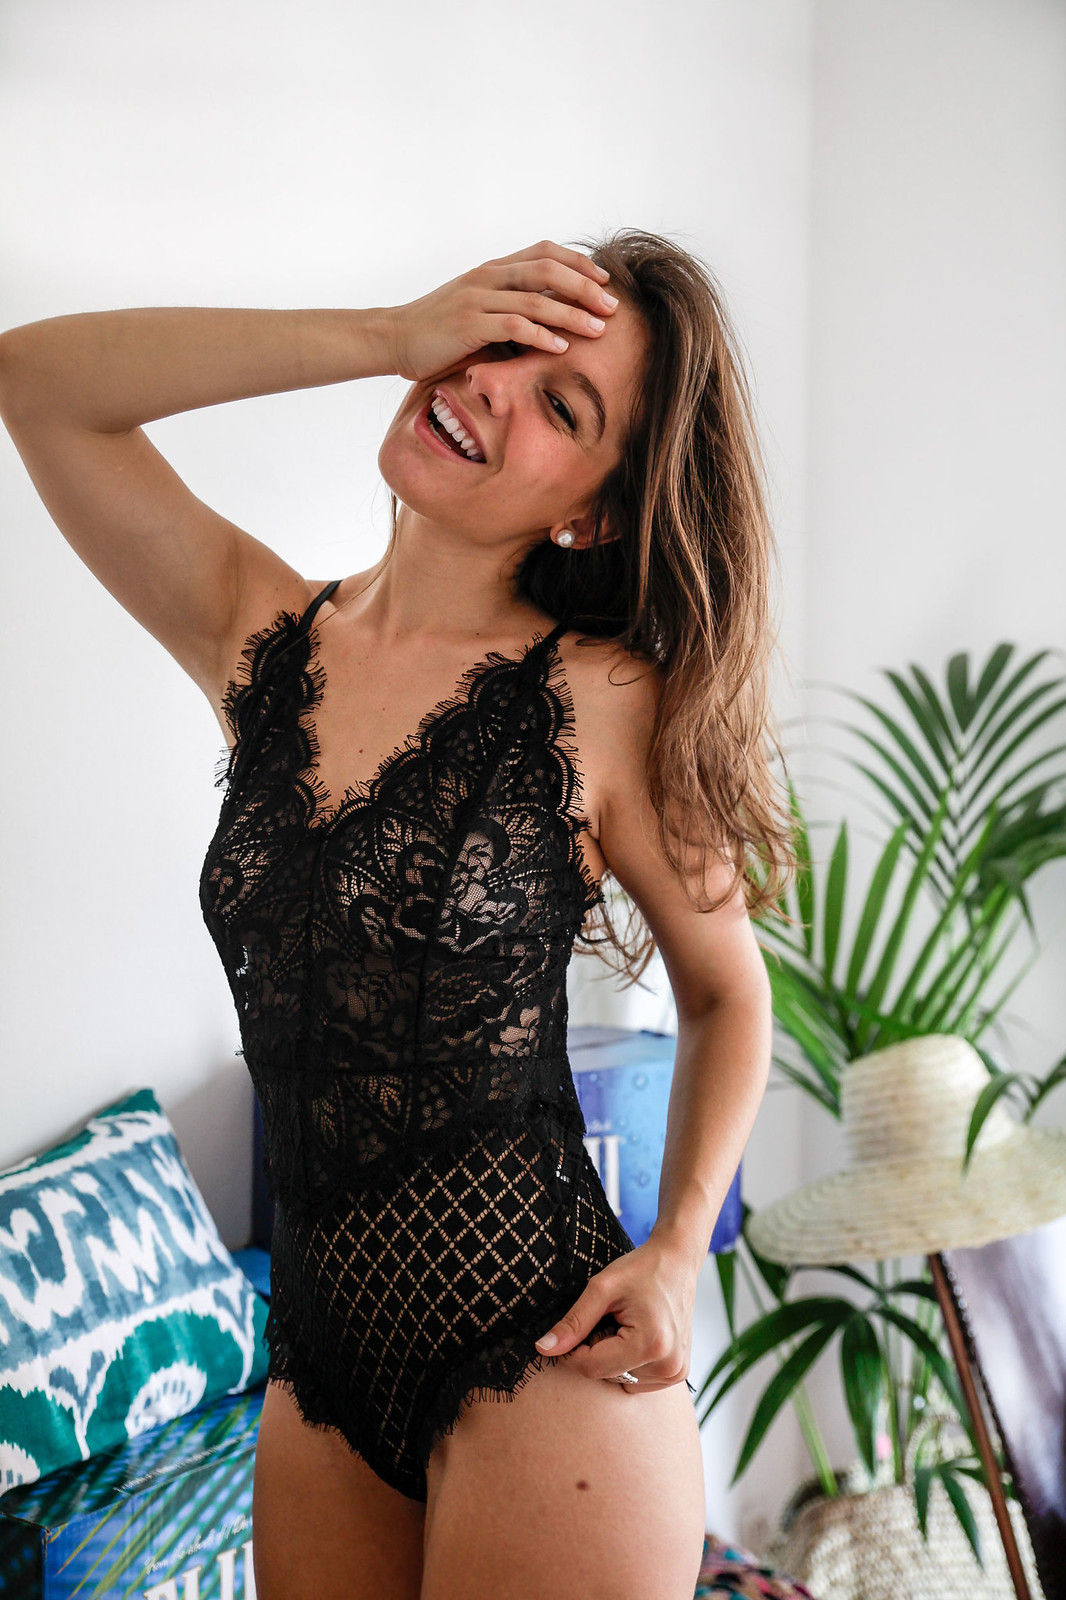 02_danity_paris_sexy_body_influencer_barcelona_theguestgirl_laura_santolaria_aloha_home_black_lace_sexy_post_bra_lenceria